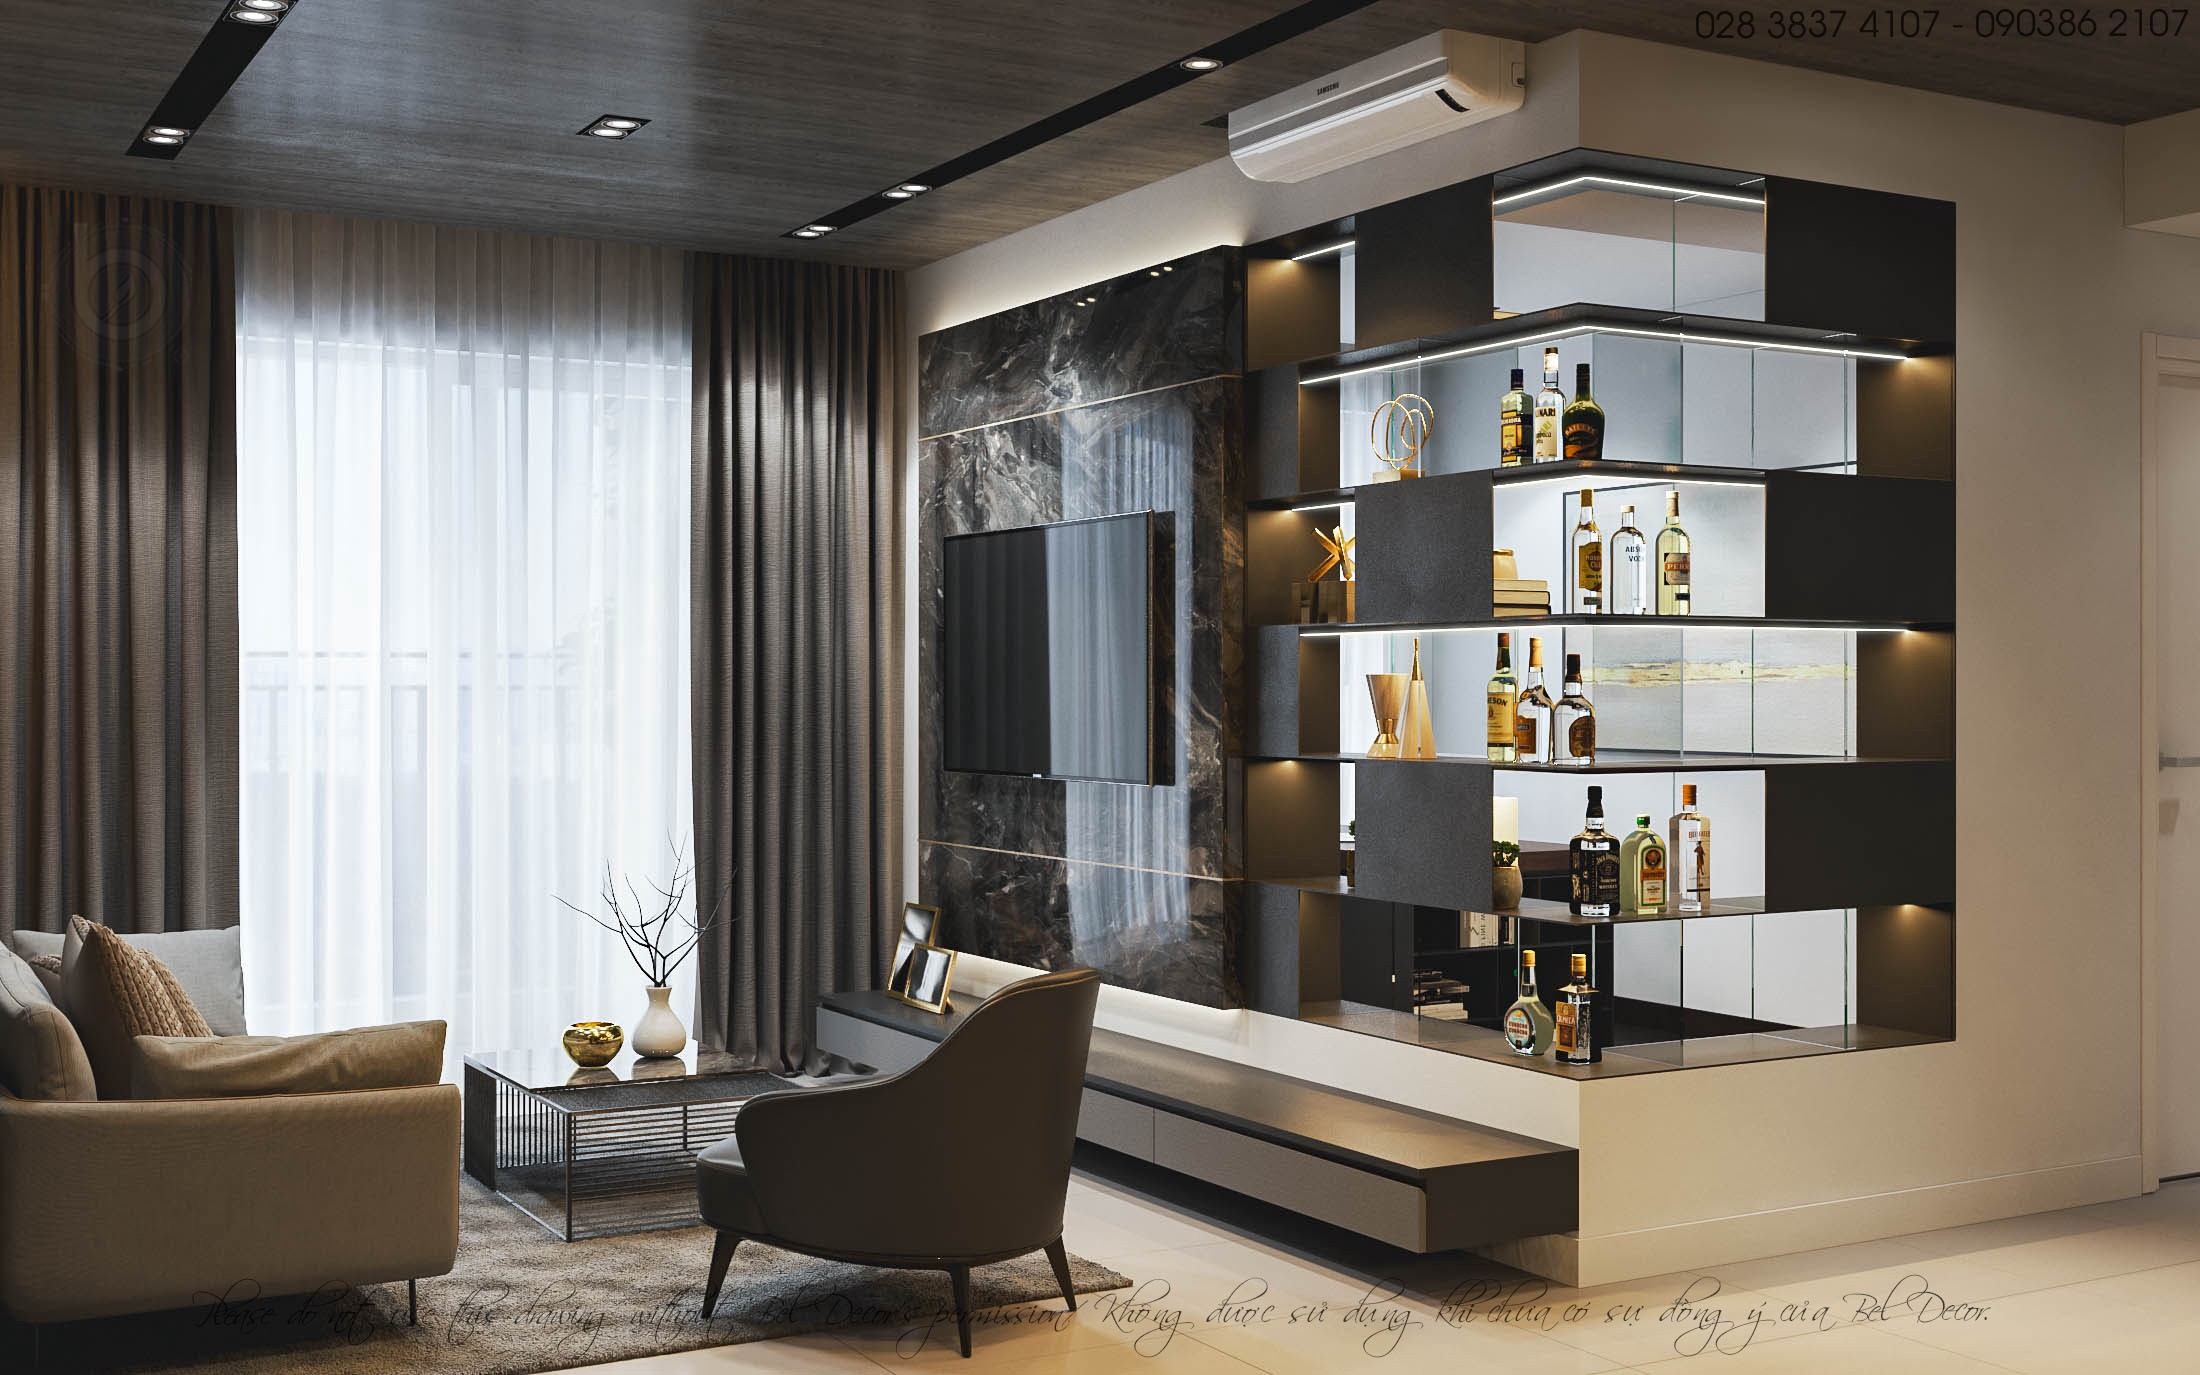 Chic Contemporary Spaces Rendered By Anh Nguyen: High-Class Living Space With Impressive Modern Style